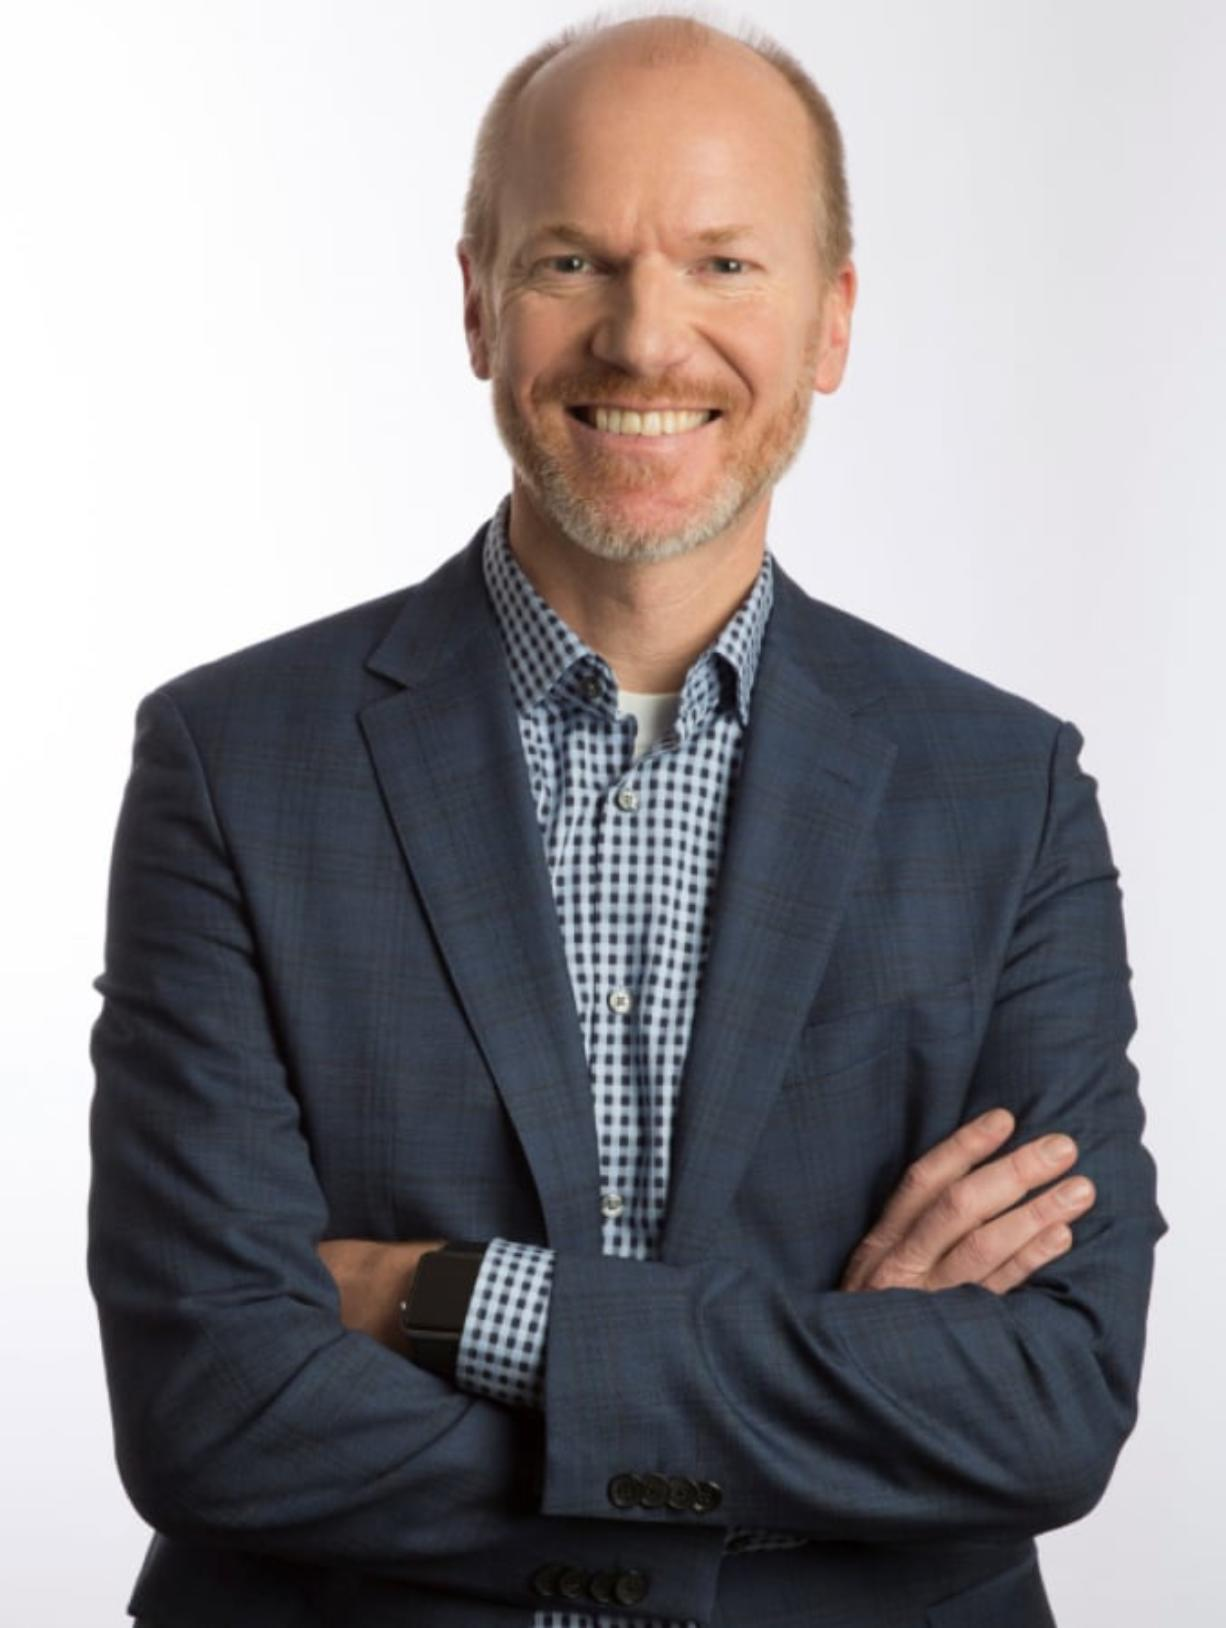 Torben Nielsen ZOOM+Care's new chief executive officer